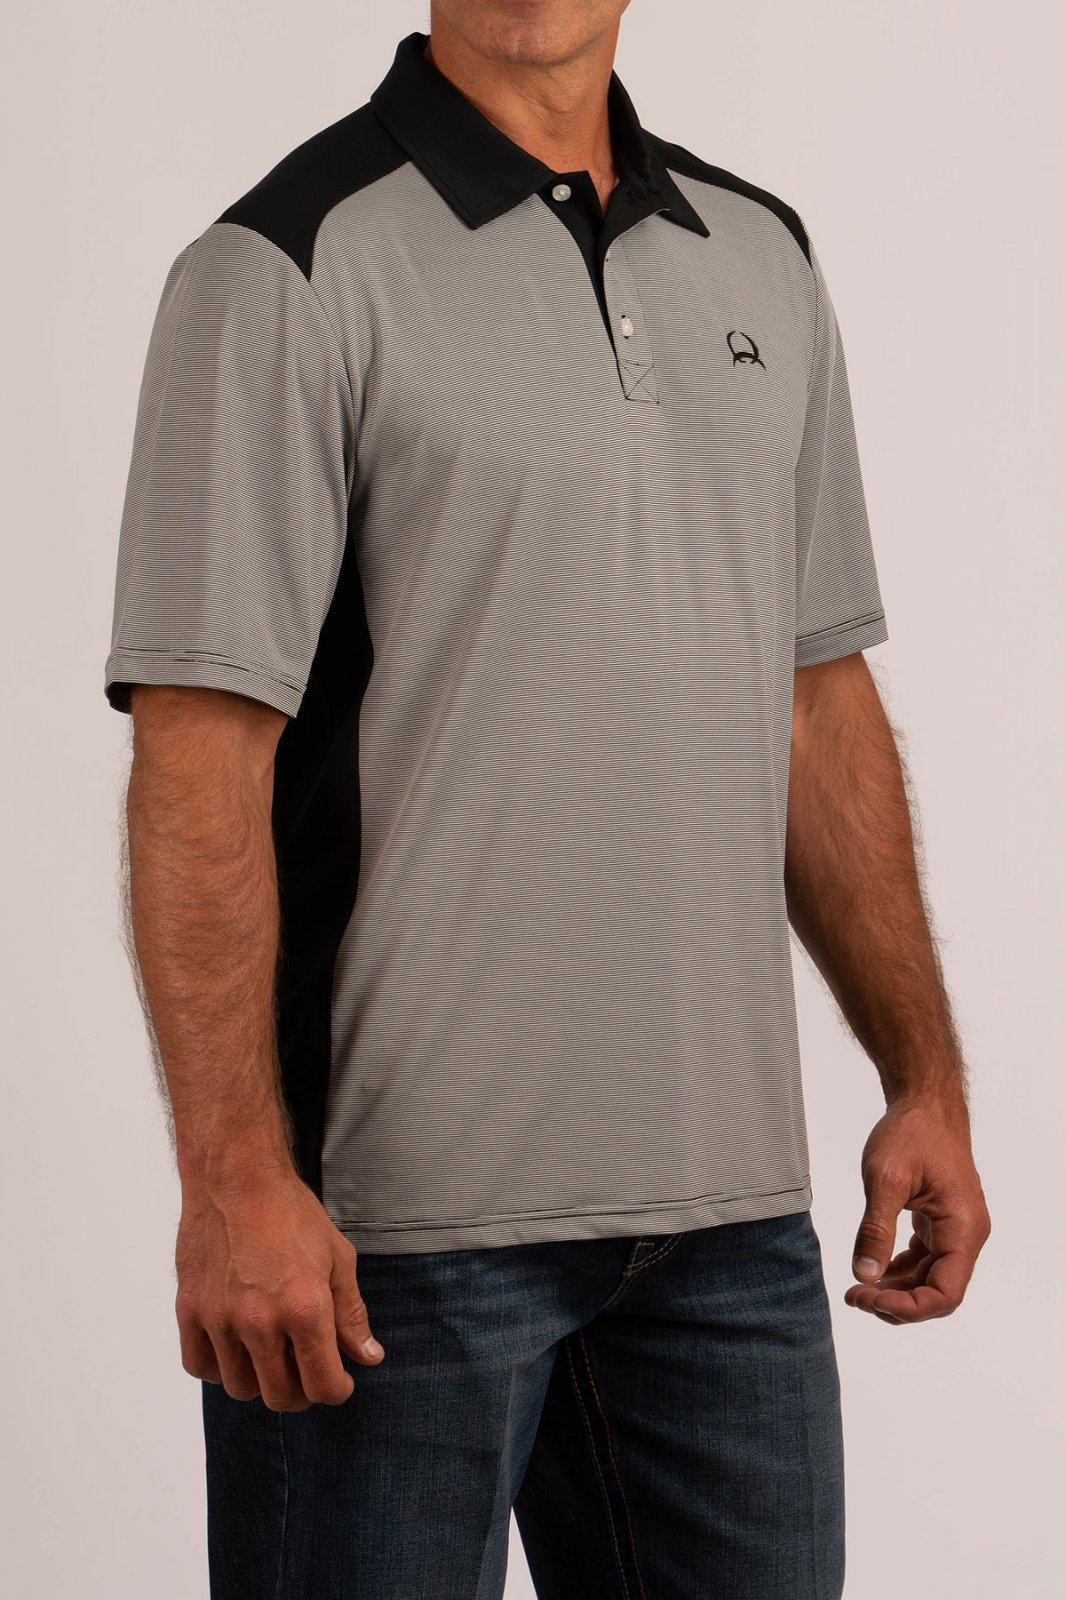 Cinch Men's SS  Polo Arena Flex Black 0519